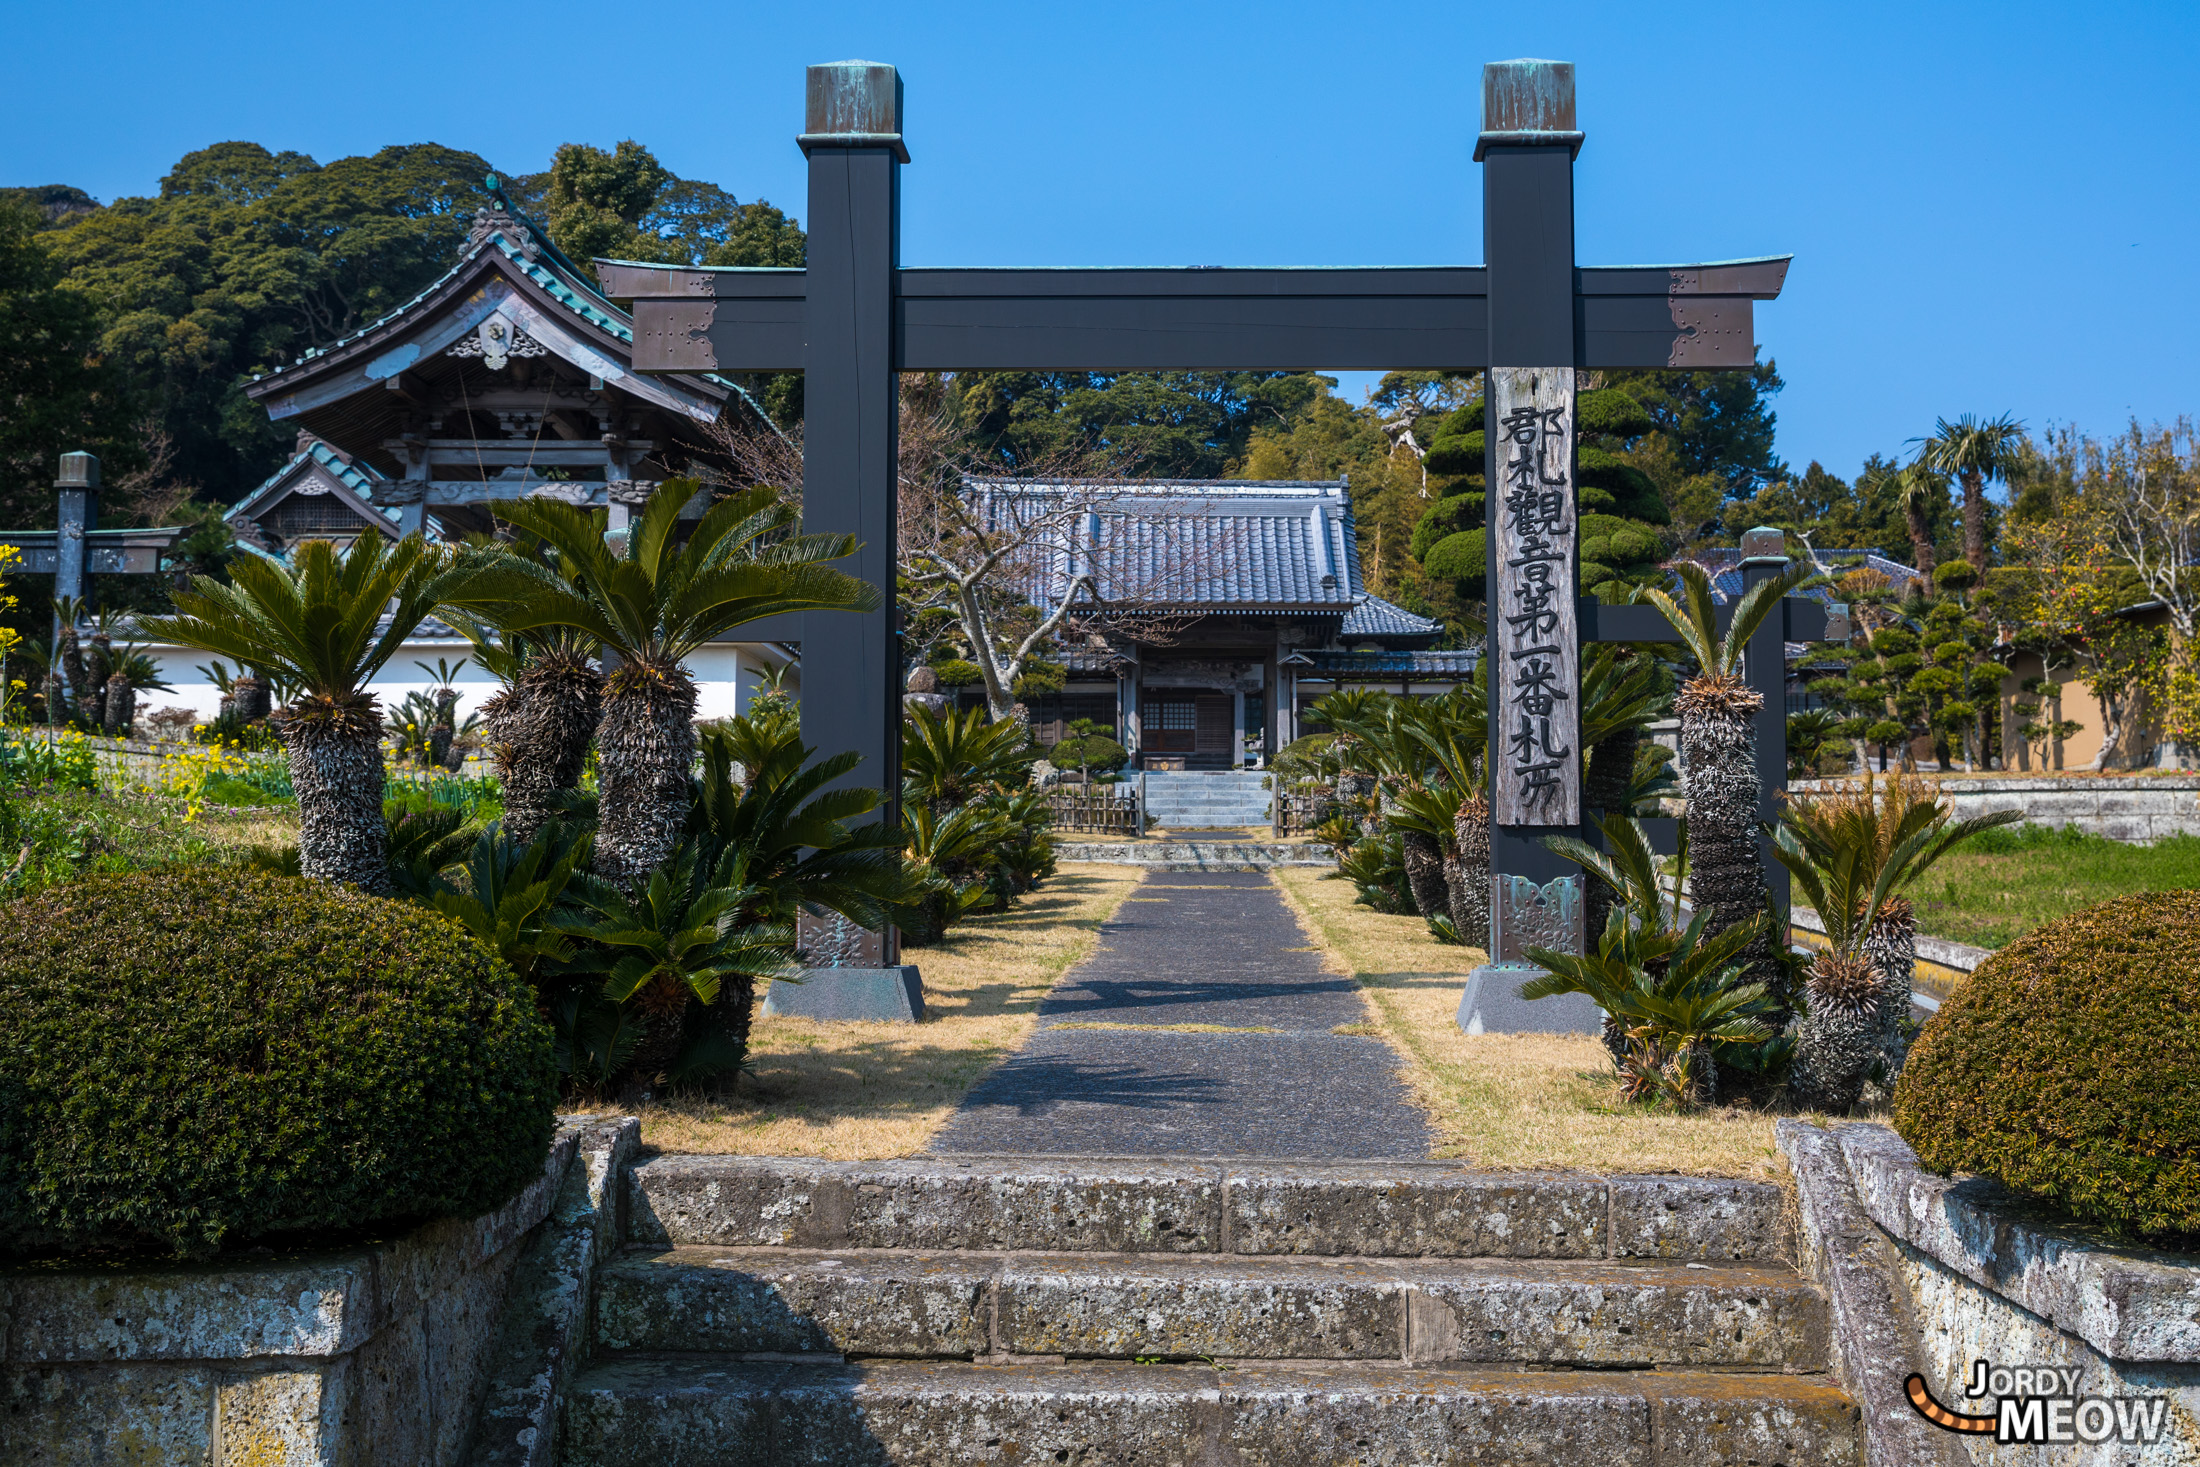 chiba, japan, japanese, kanto, religion, religious, shinto, shrine, spiritual, thing, tori